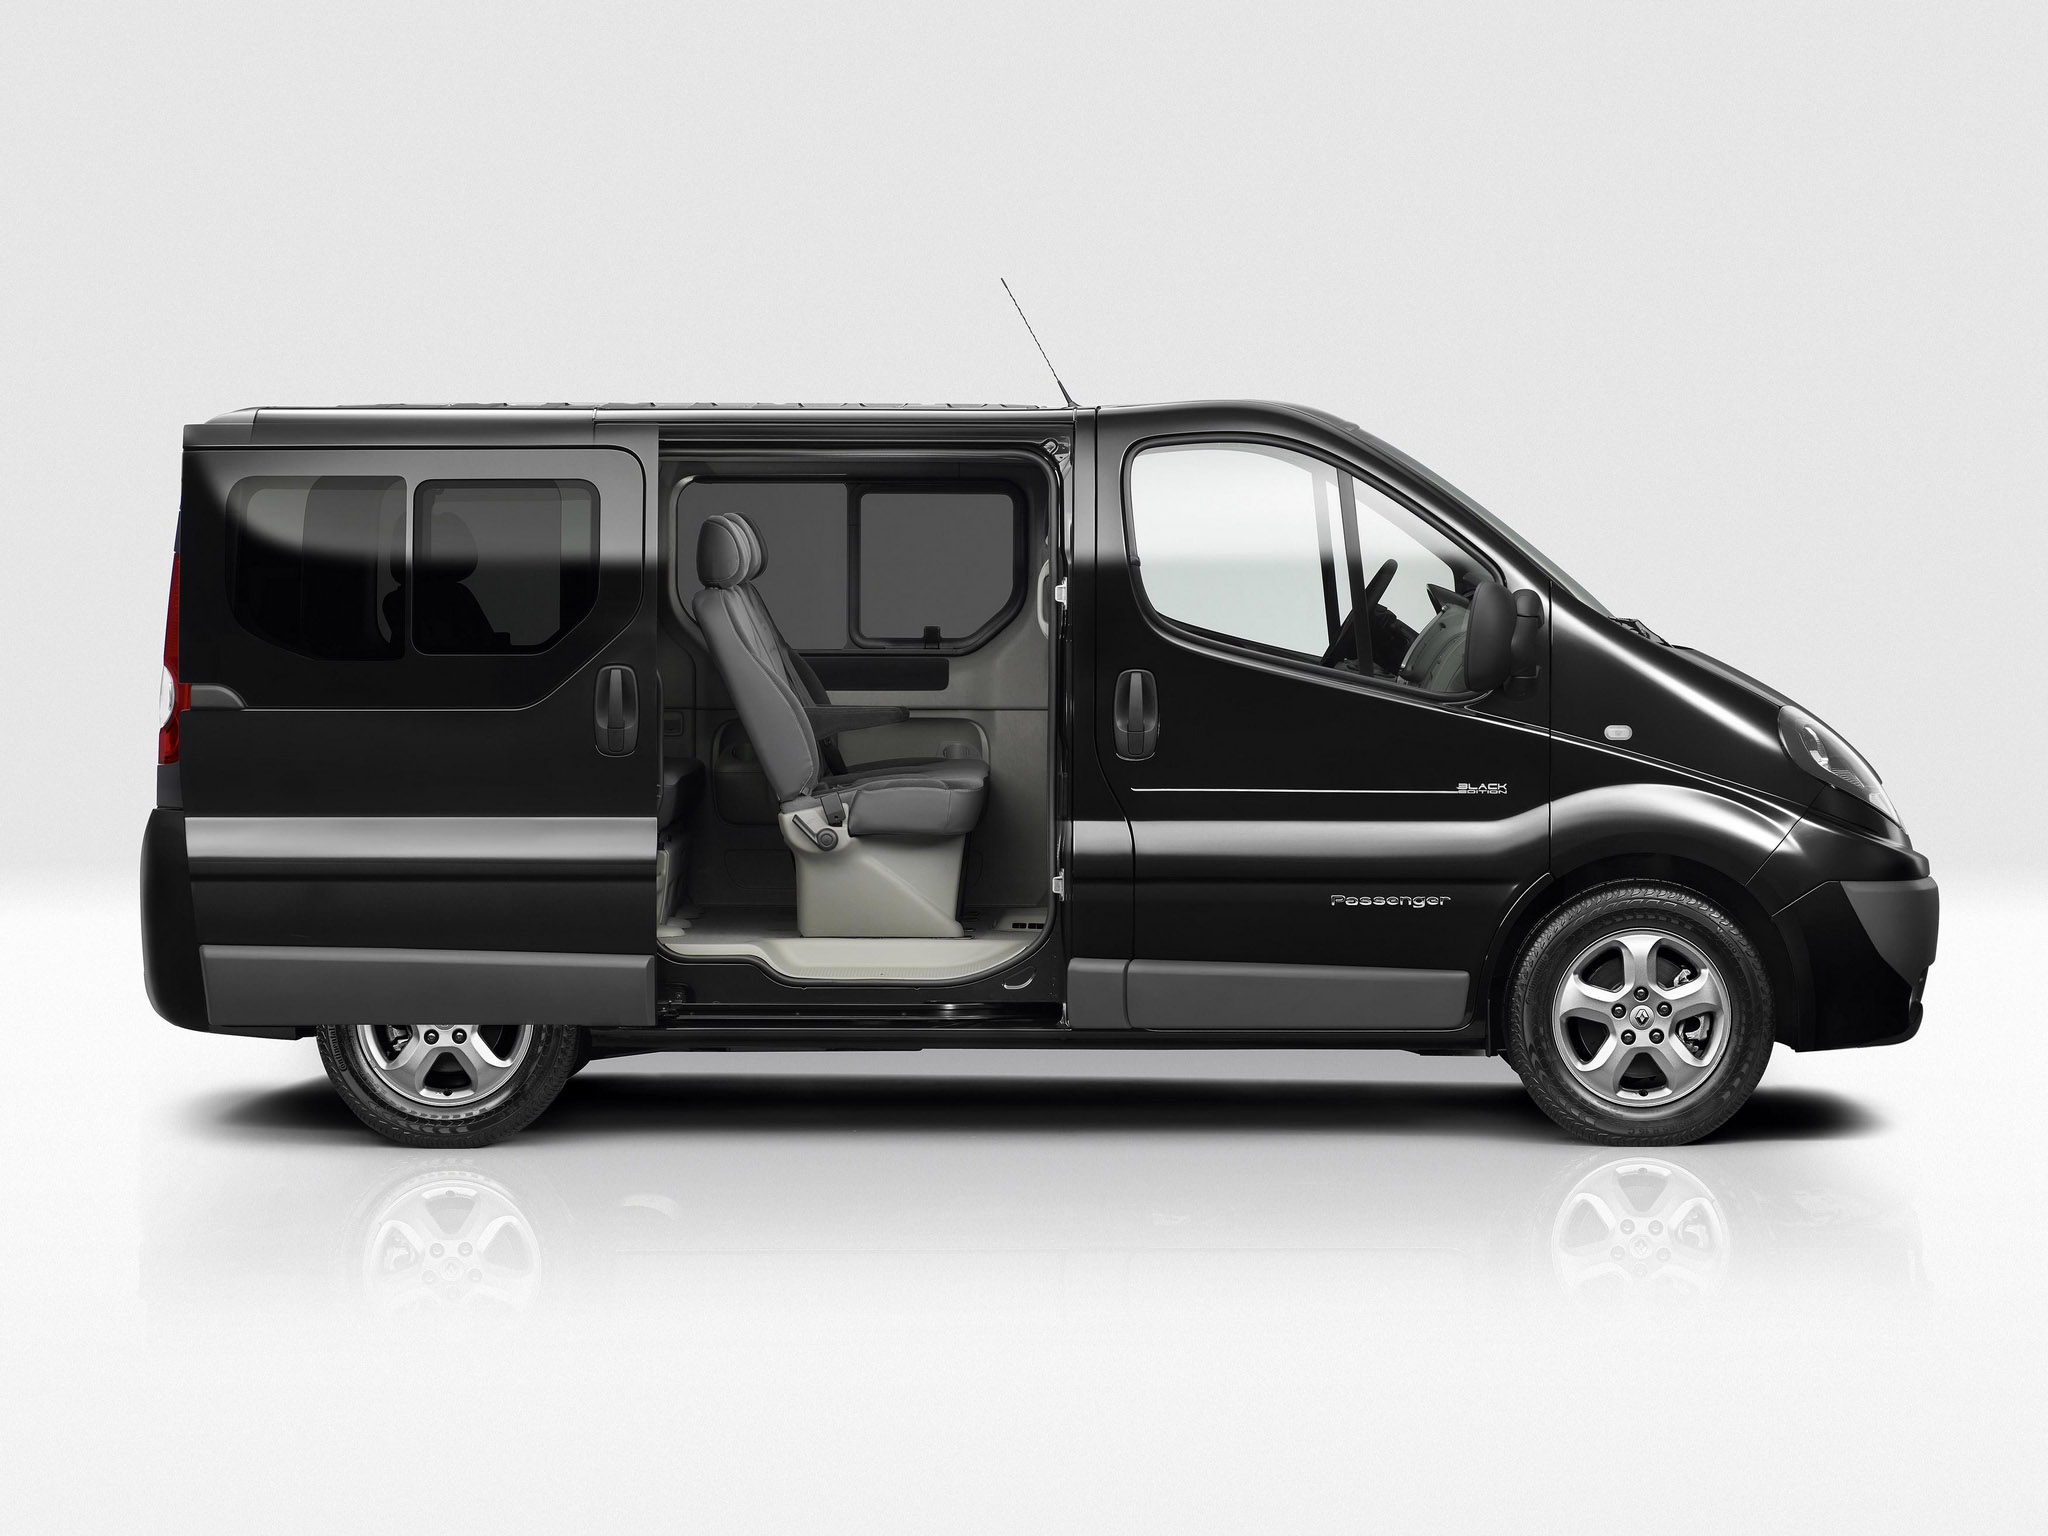 Renault Trafic Black Edition 2010 Photo 01 Car In Pictures Car Photo Gallery